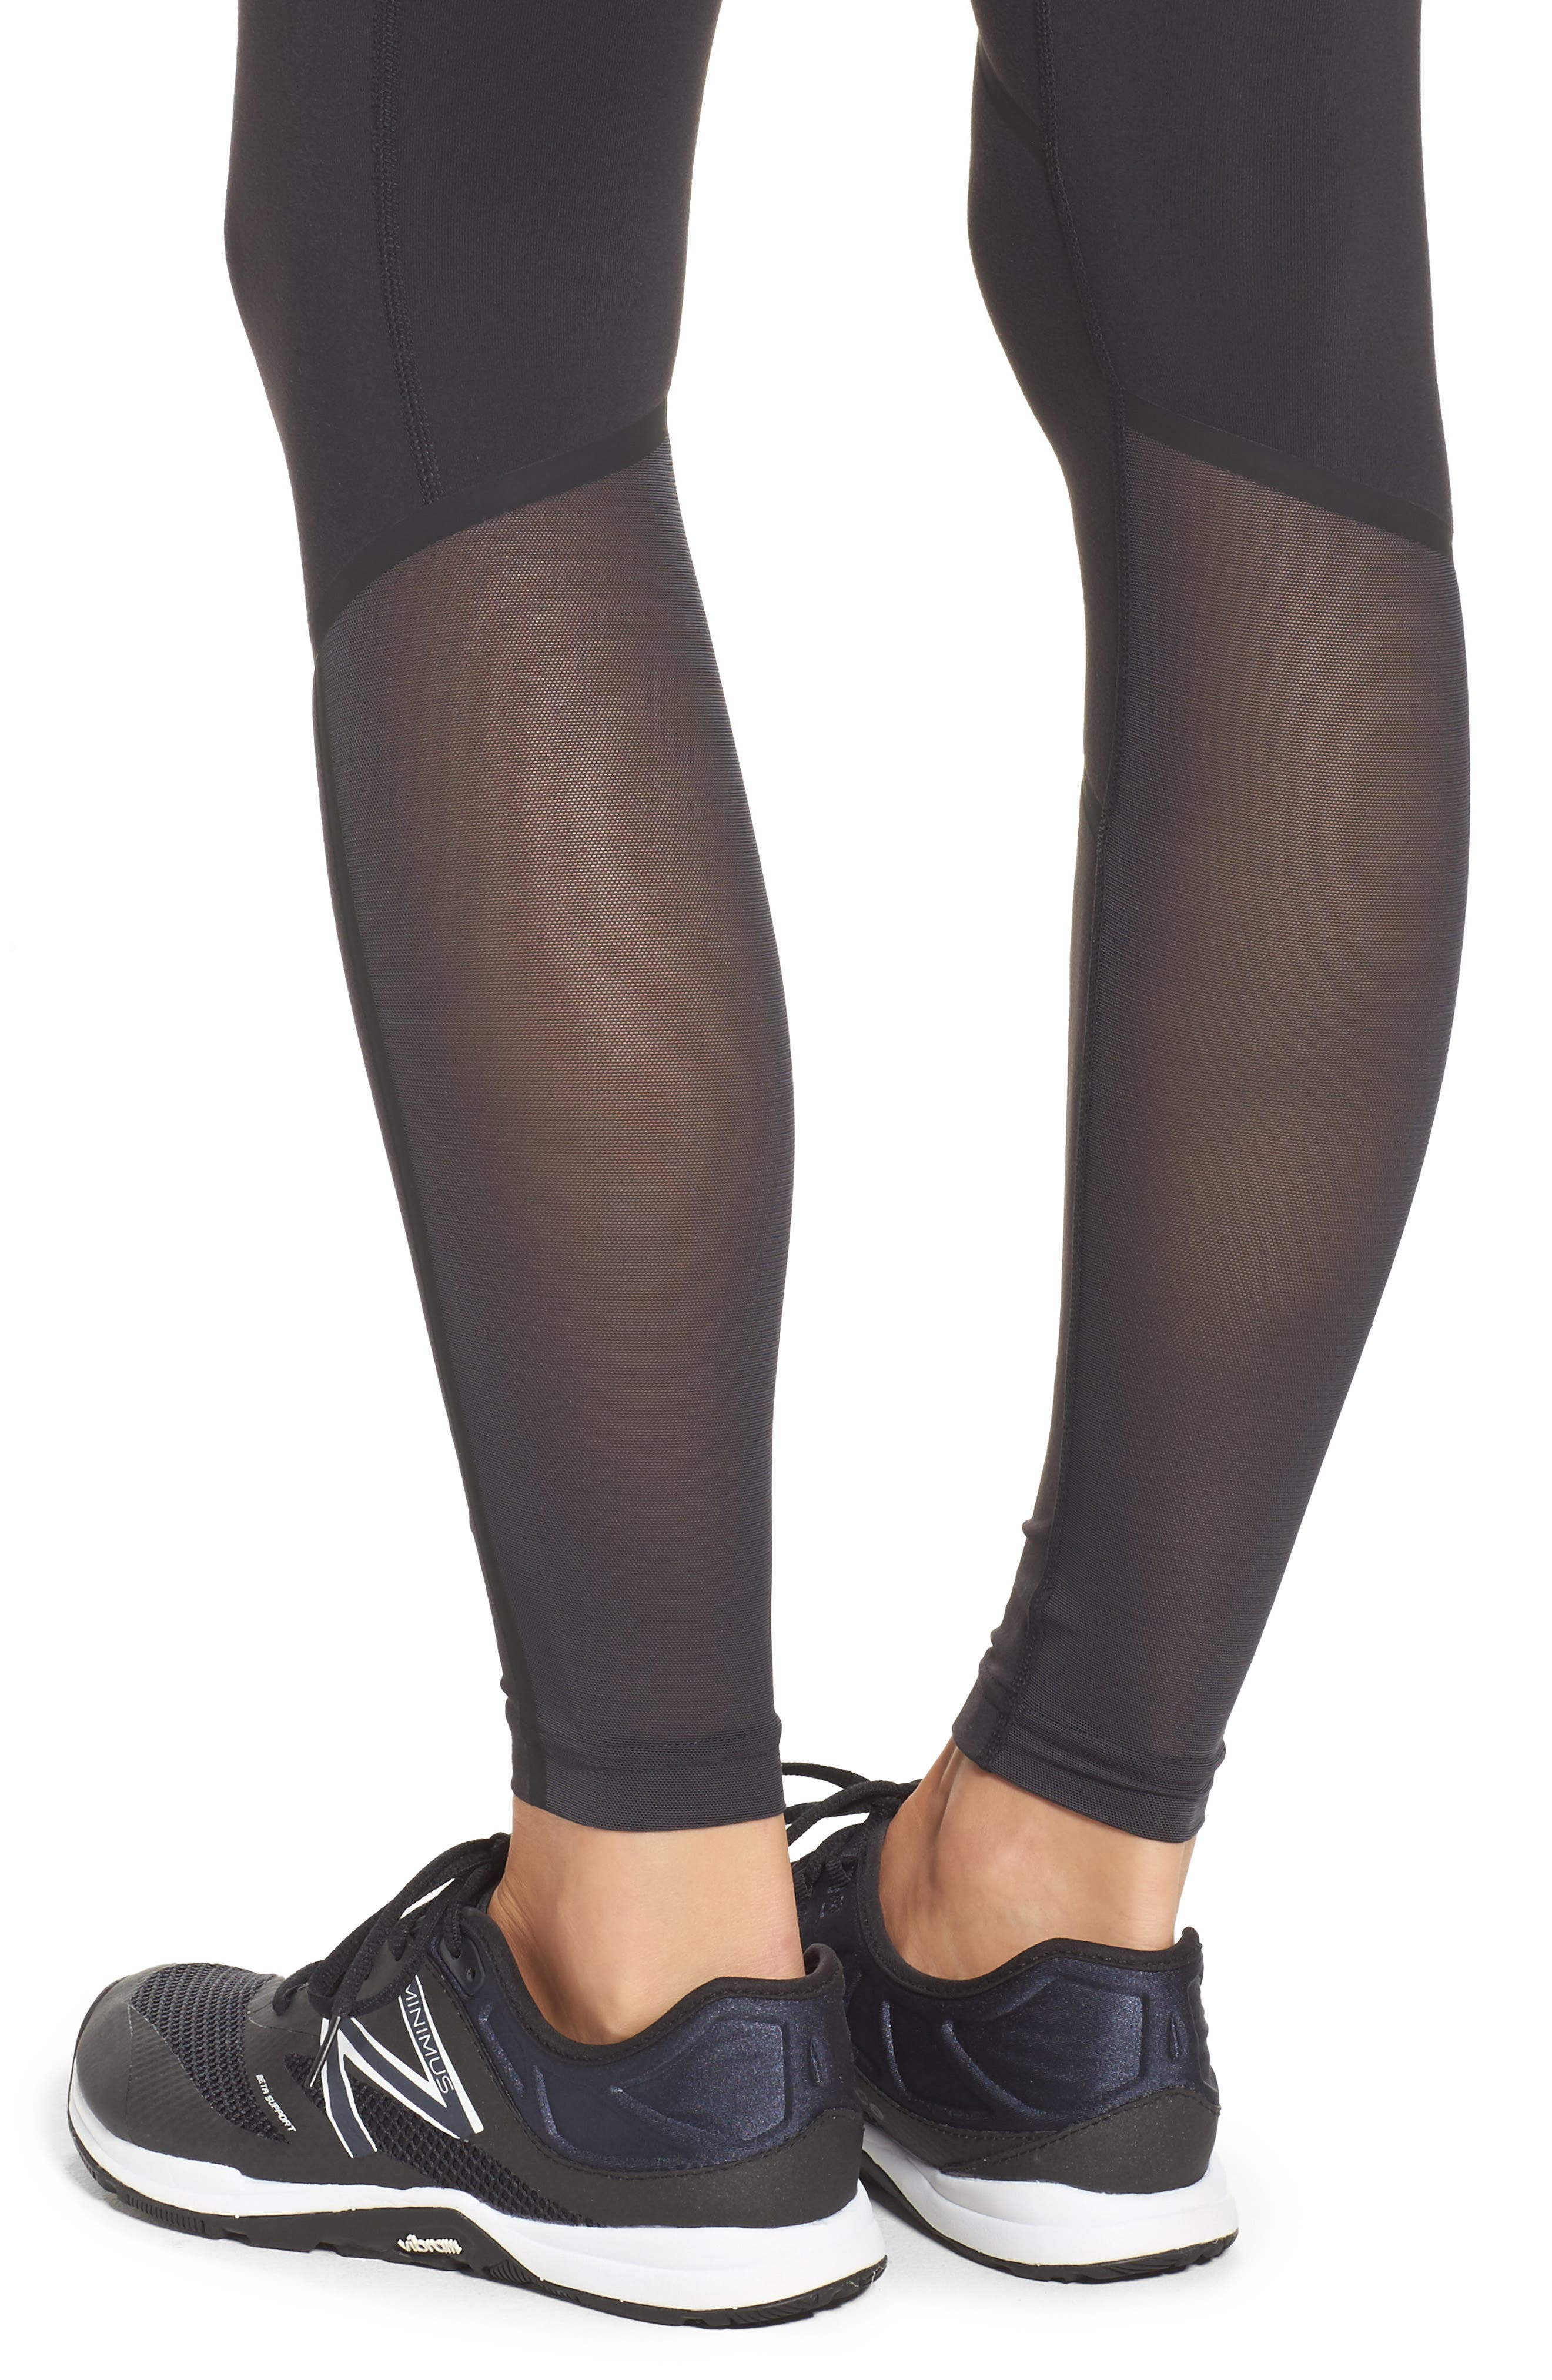 Intensity Tights,                             Alternate thumbnail 4, color,                             001